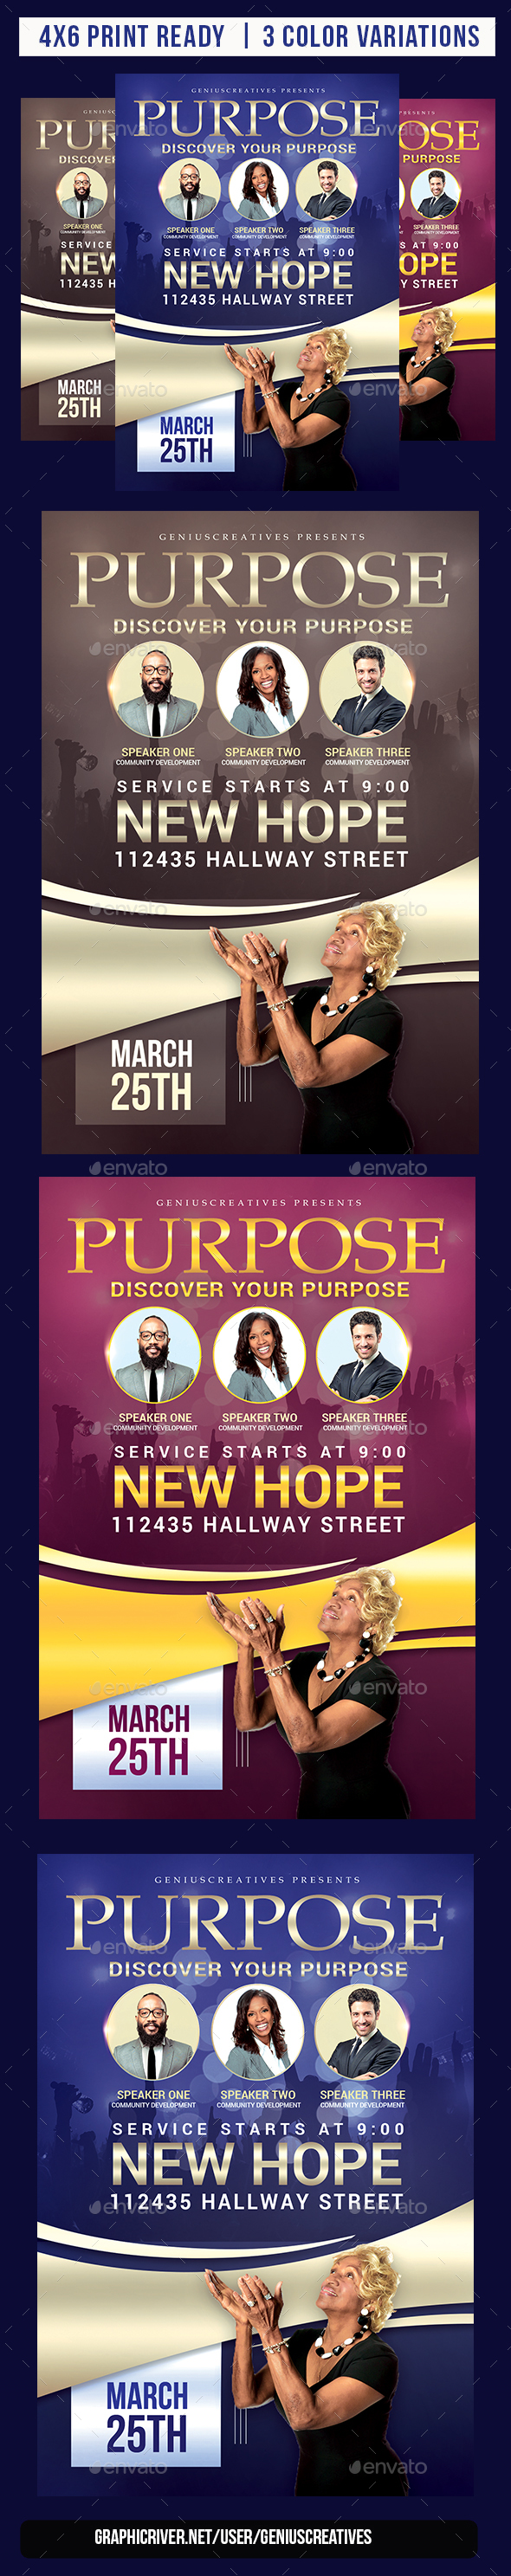 Purpose Church Flyer Template - Church Flyers